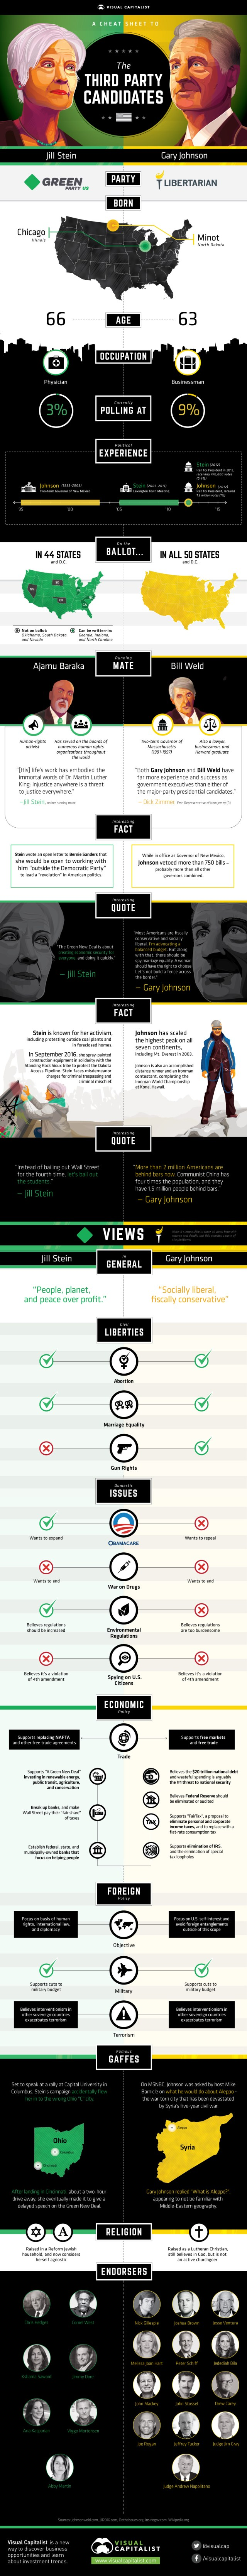 infographic-third-party-candidates